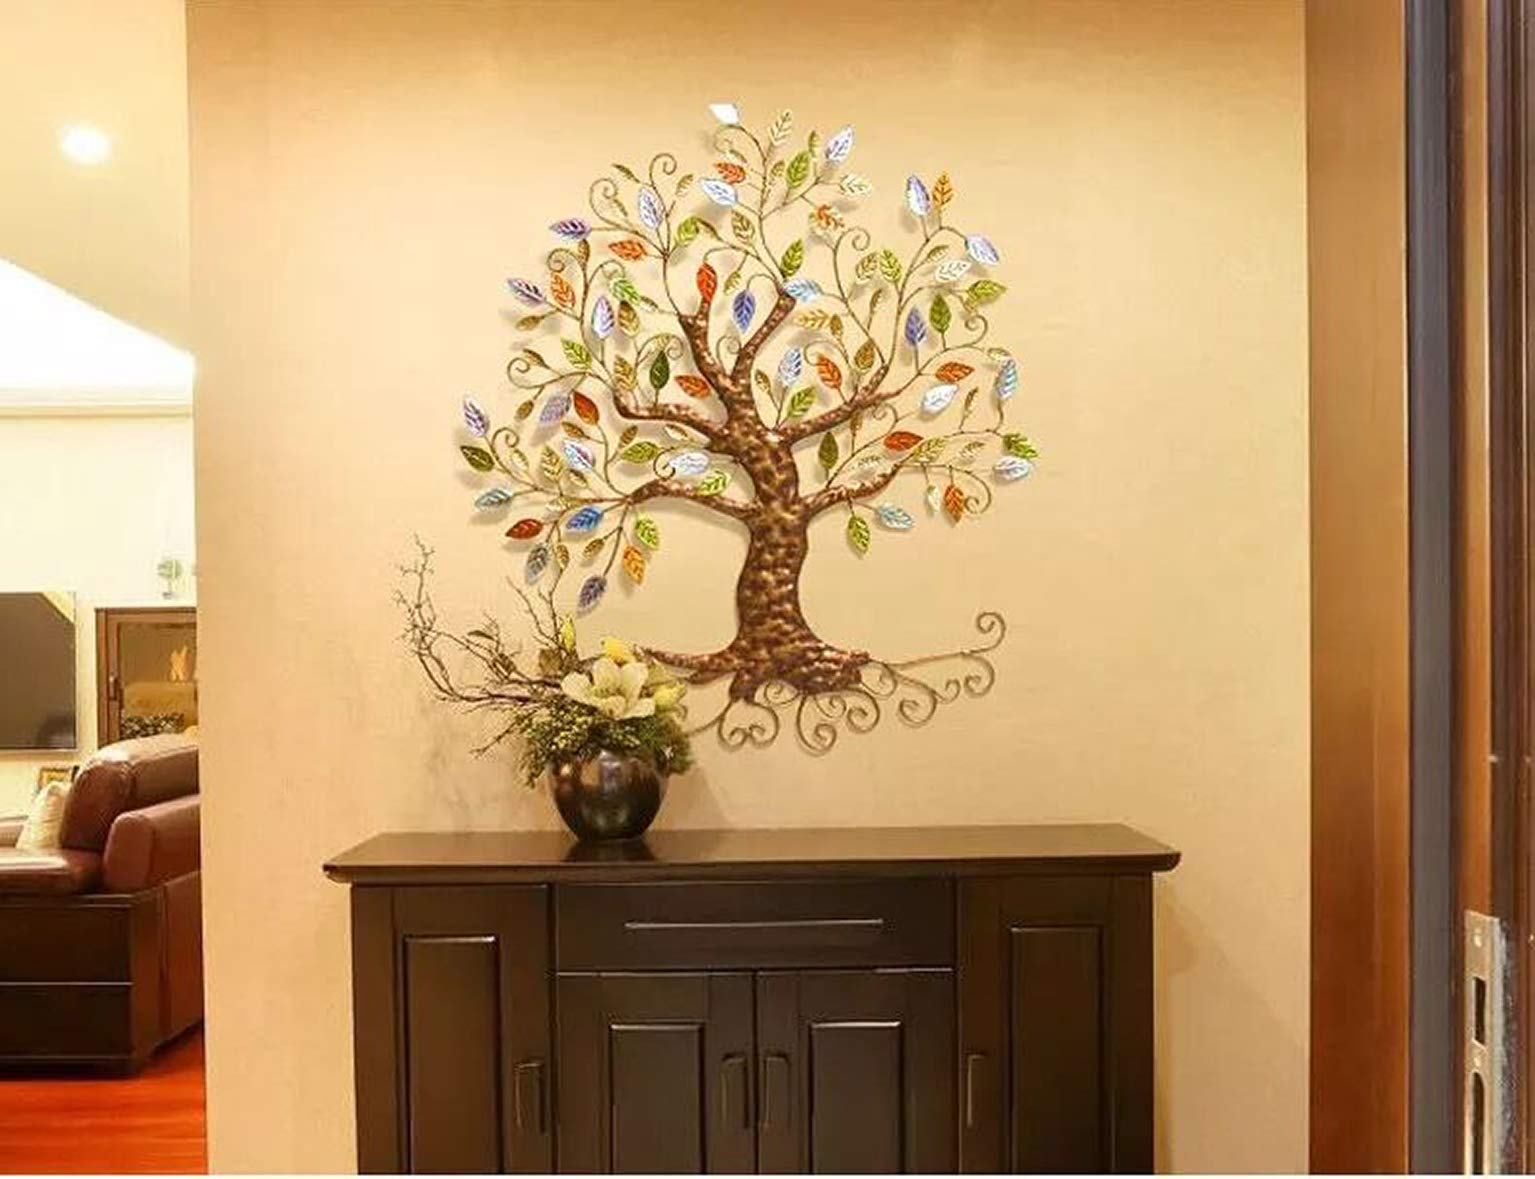 Tree of Life - Metal Tree Wall Sculpture, Gold Tree Home Decor by YJ Home